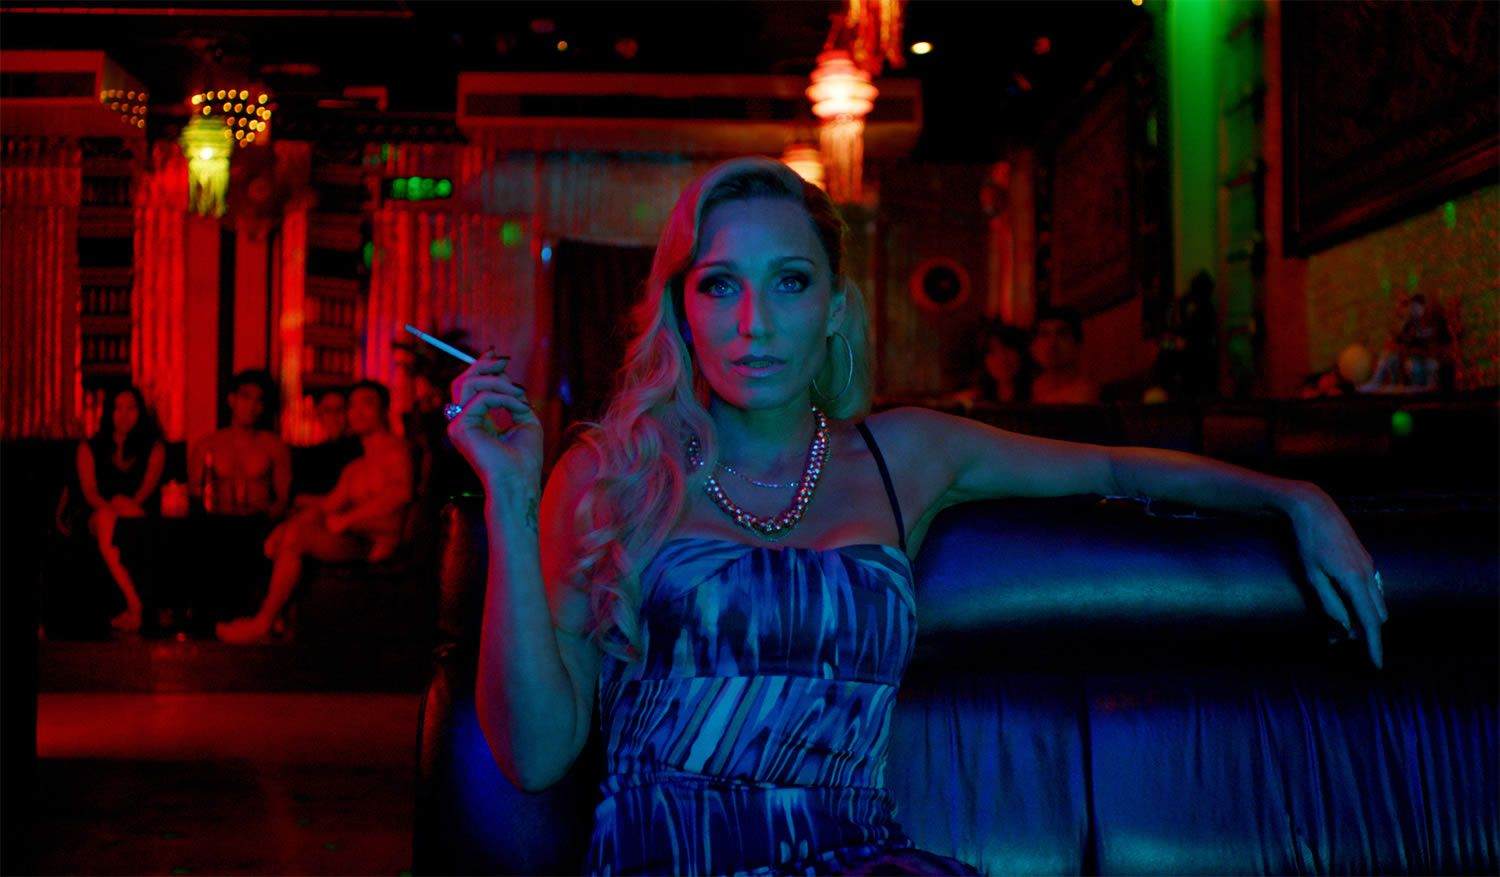 10 Visually Stunning Movies With Neon Lighting You Asked